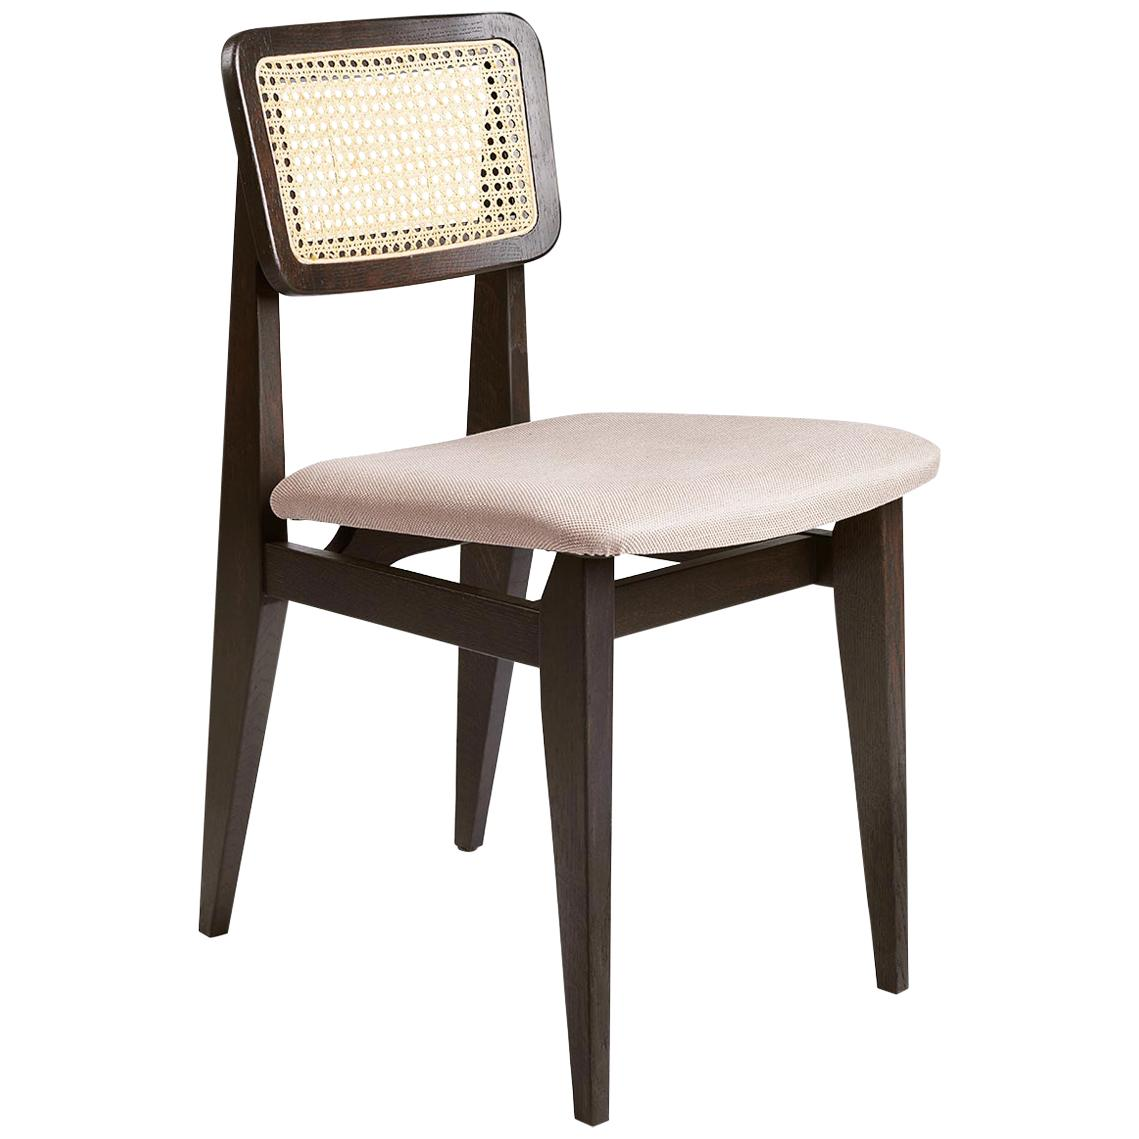 C-Chair Dining Chair, Seat Upholstered, French Cane Back, Black Stained Oak